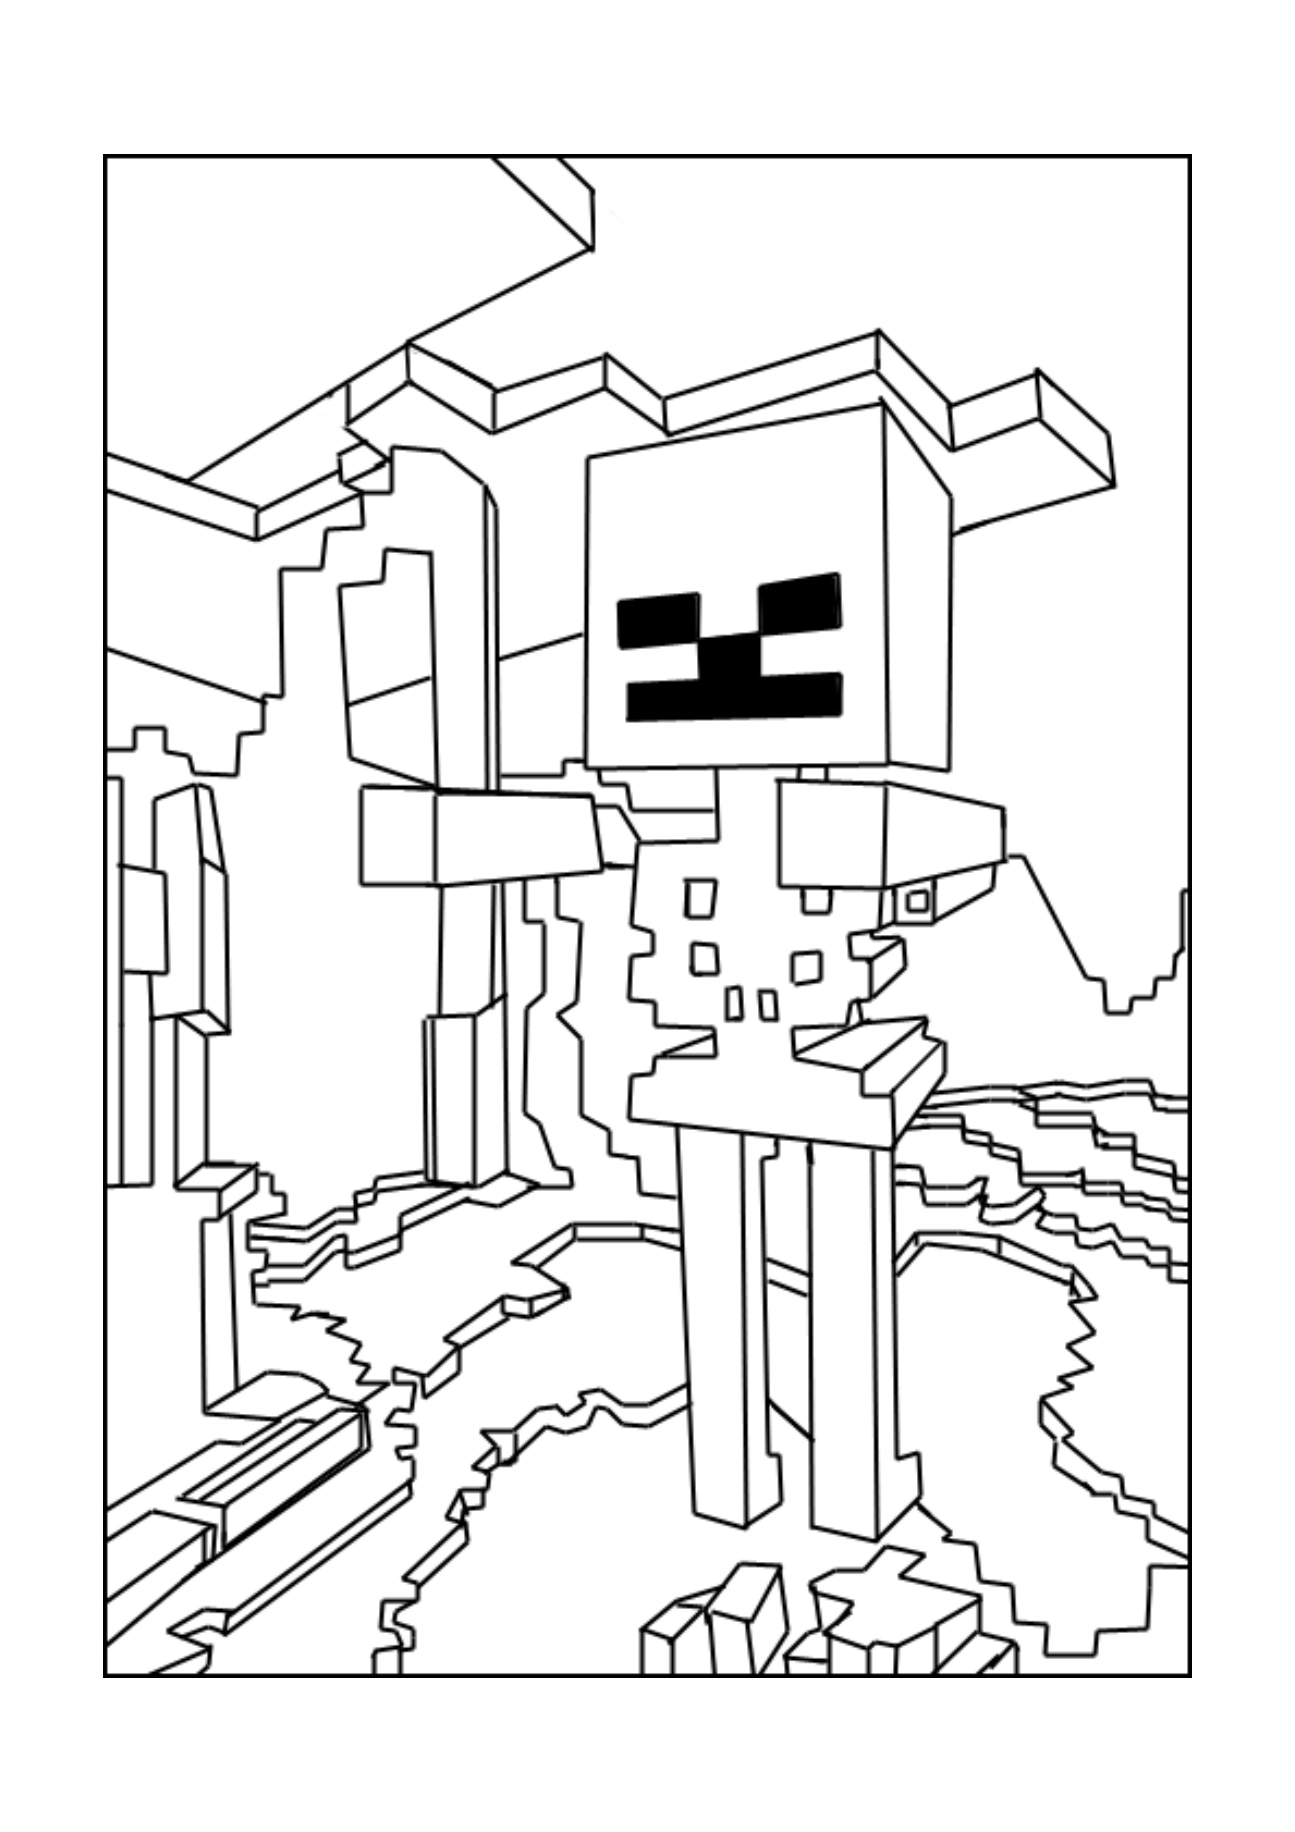 minecraft coloring minecraft coloring pages best coloring pages for kids coloring minecraft 1 1